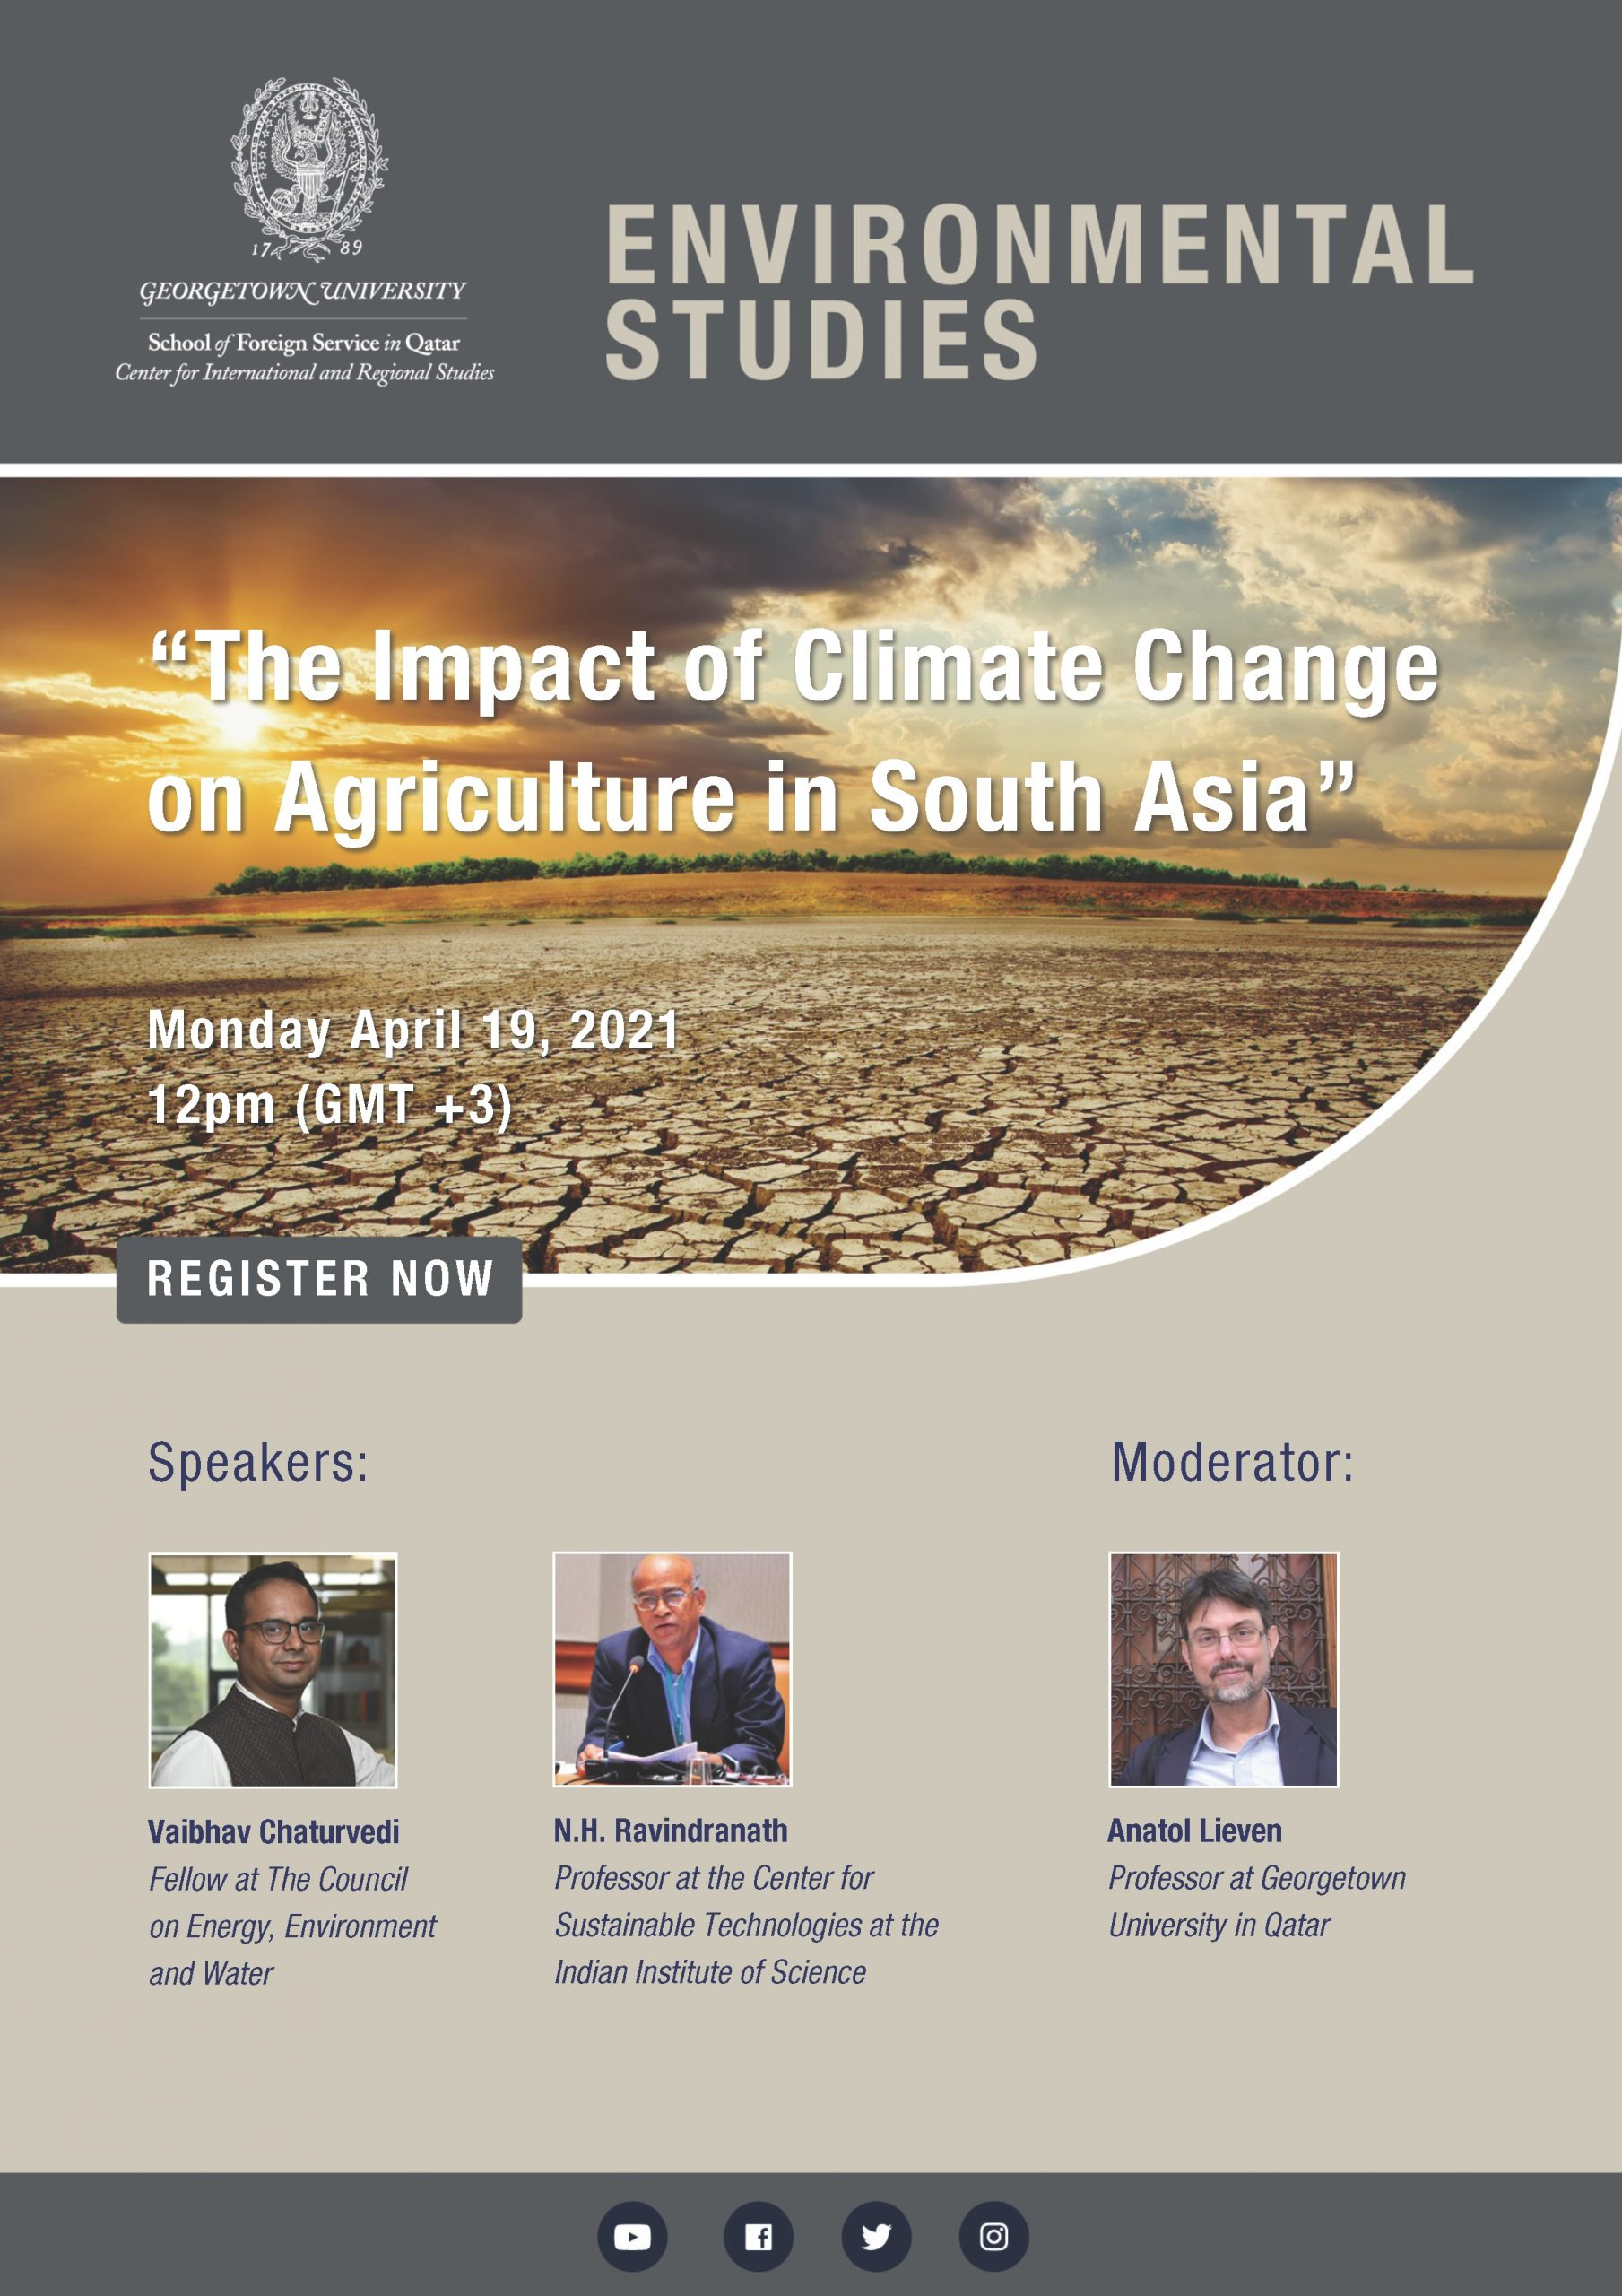 poster with a the title Environmental Studies and the CIRS logo on a grey background, an image of a dry and cracked scotched earth with the sun setting in the hosizon and the title of the event. Below is 3 images of the speakers and the moderator